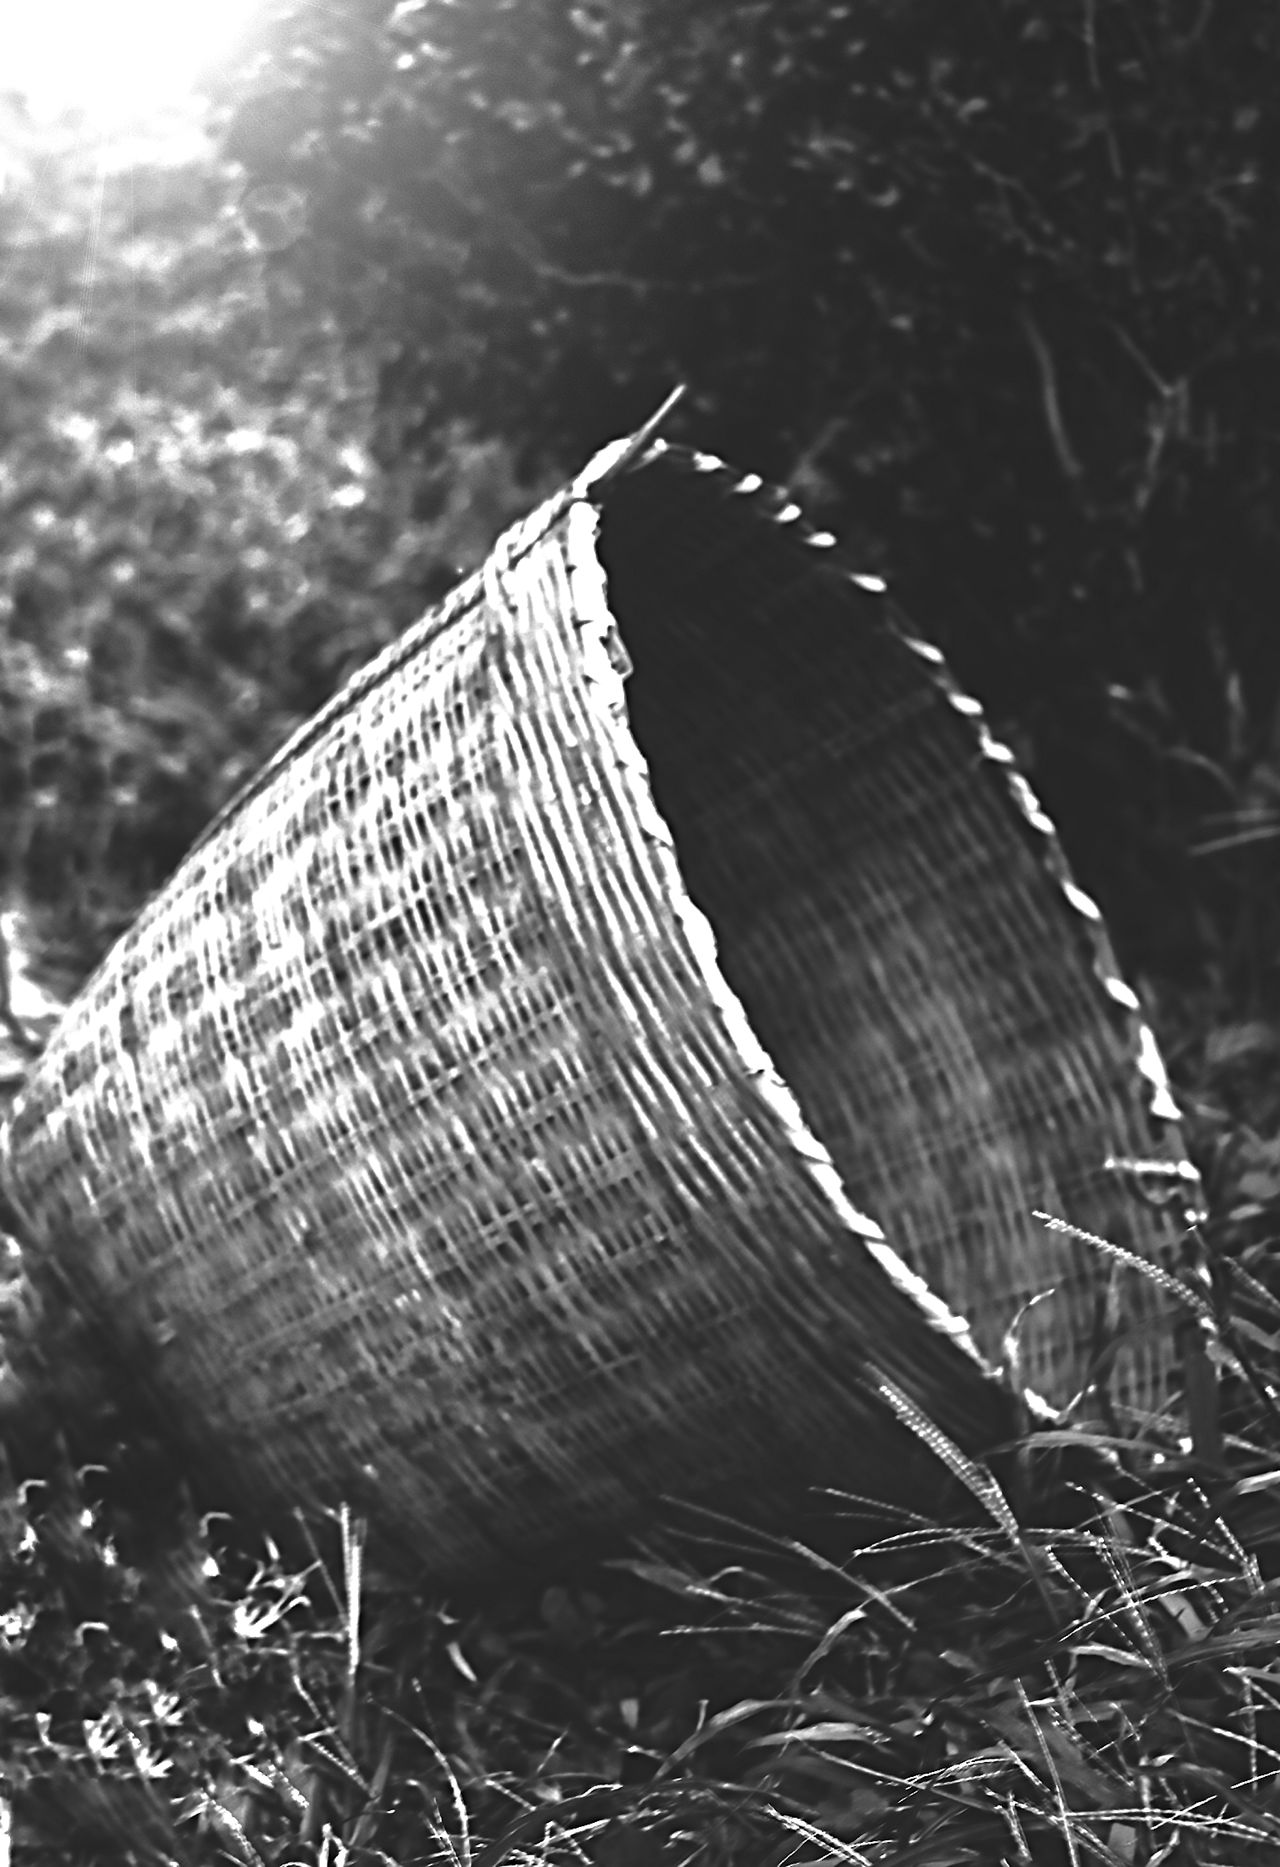 Abandoned ASIA Basket Black And White Blackandwhite Blackandwhite Photography China Chinese Day Grass Handmade In The Woods Light And Shadow No People Simplicity Woven Bamboo Woven Baskets